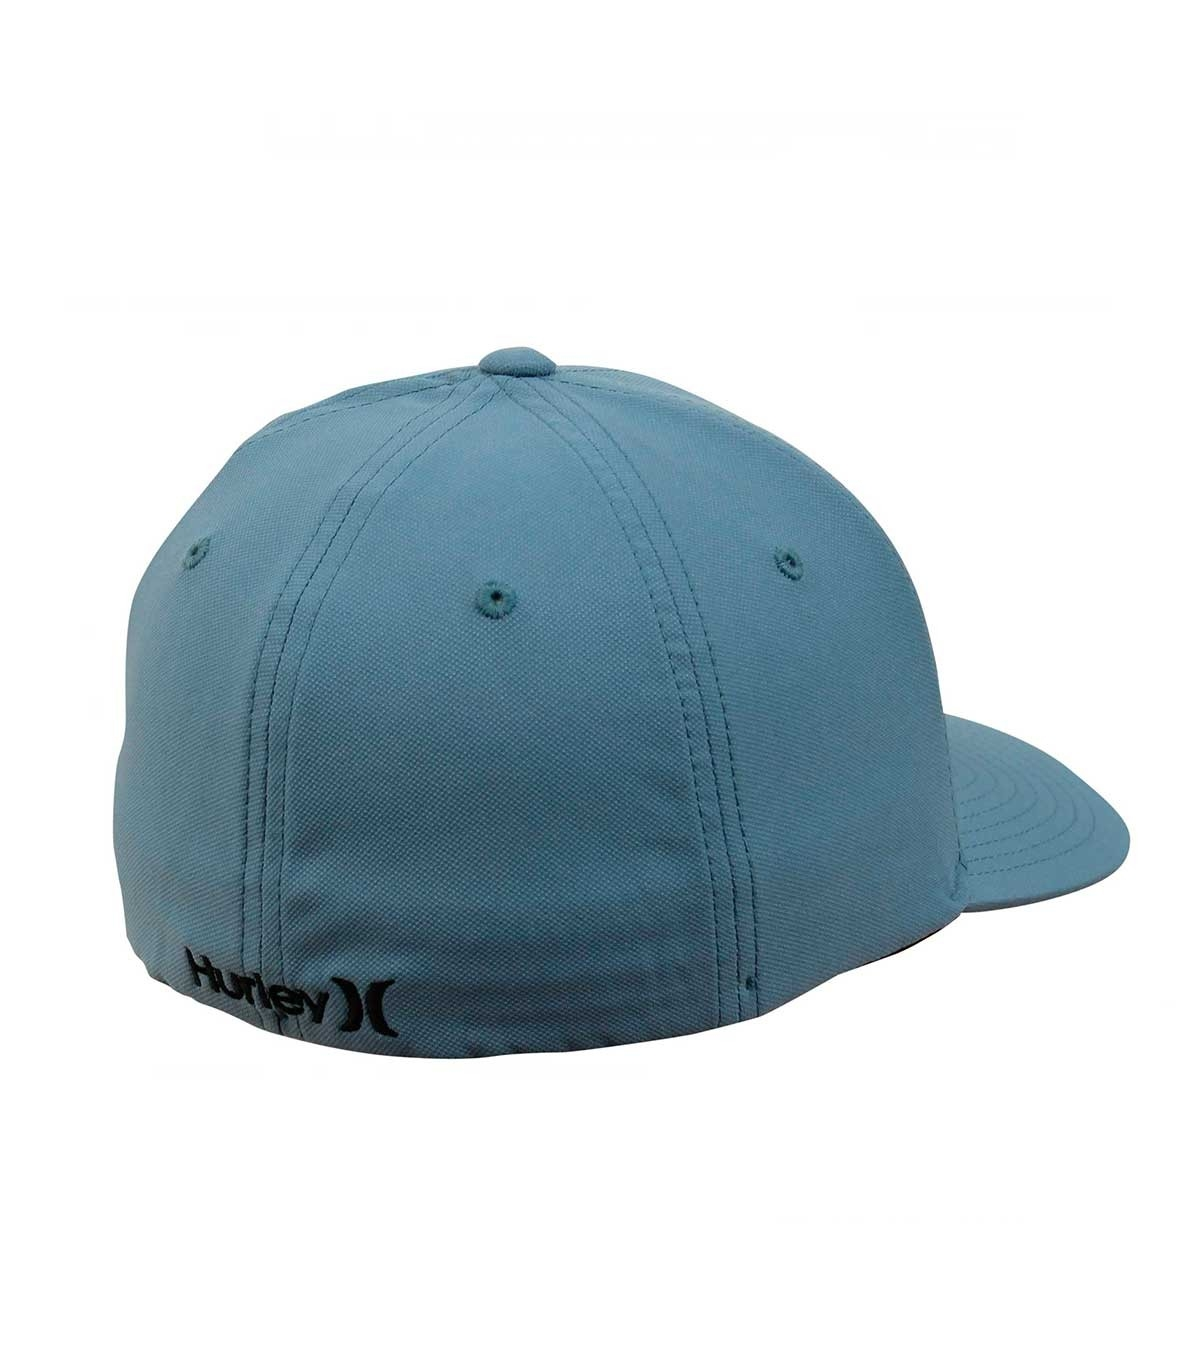 9db39e0af13 Buy Hurley M Dri-Fit One Only 2.0 Homre Azul